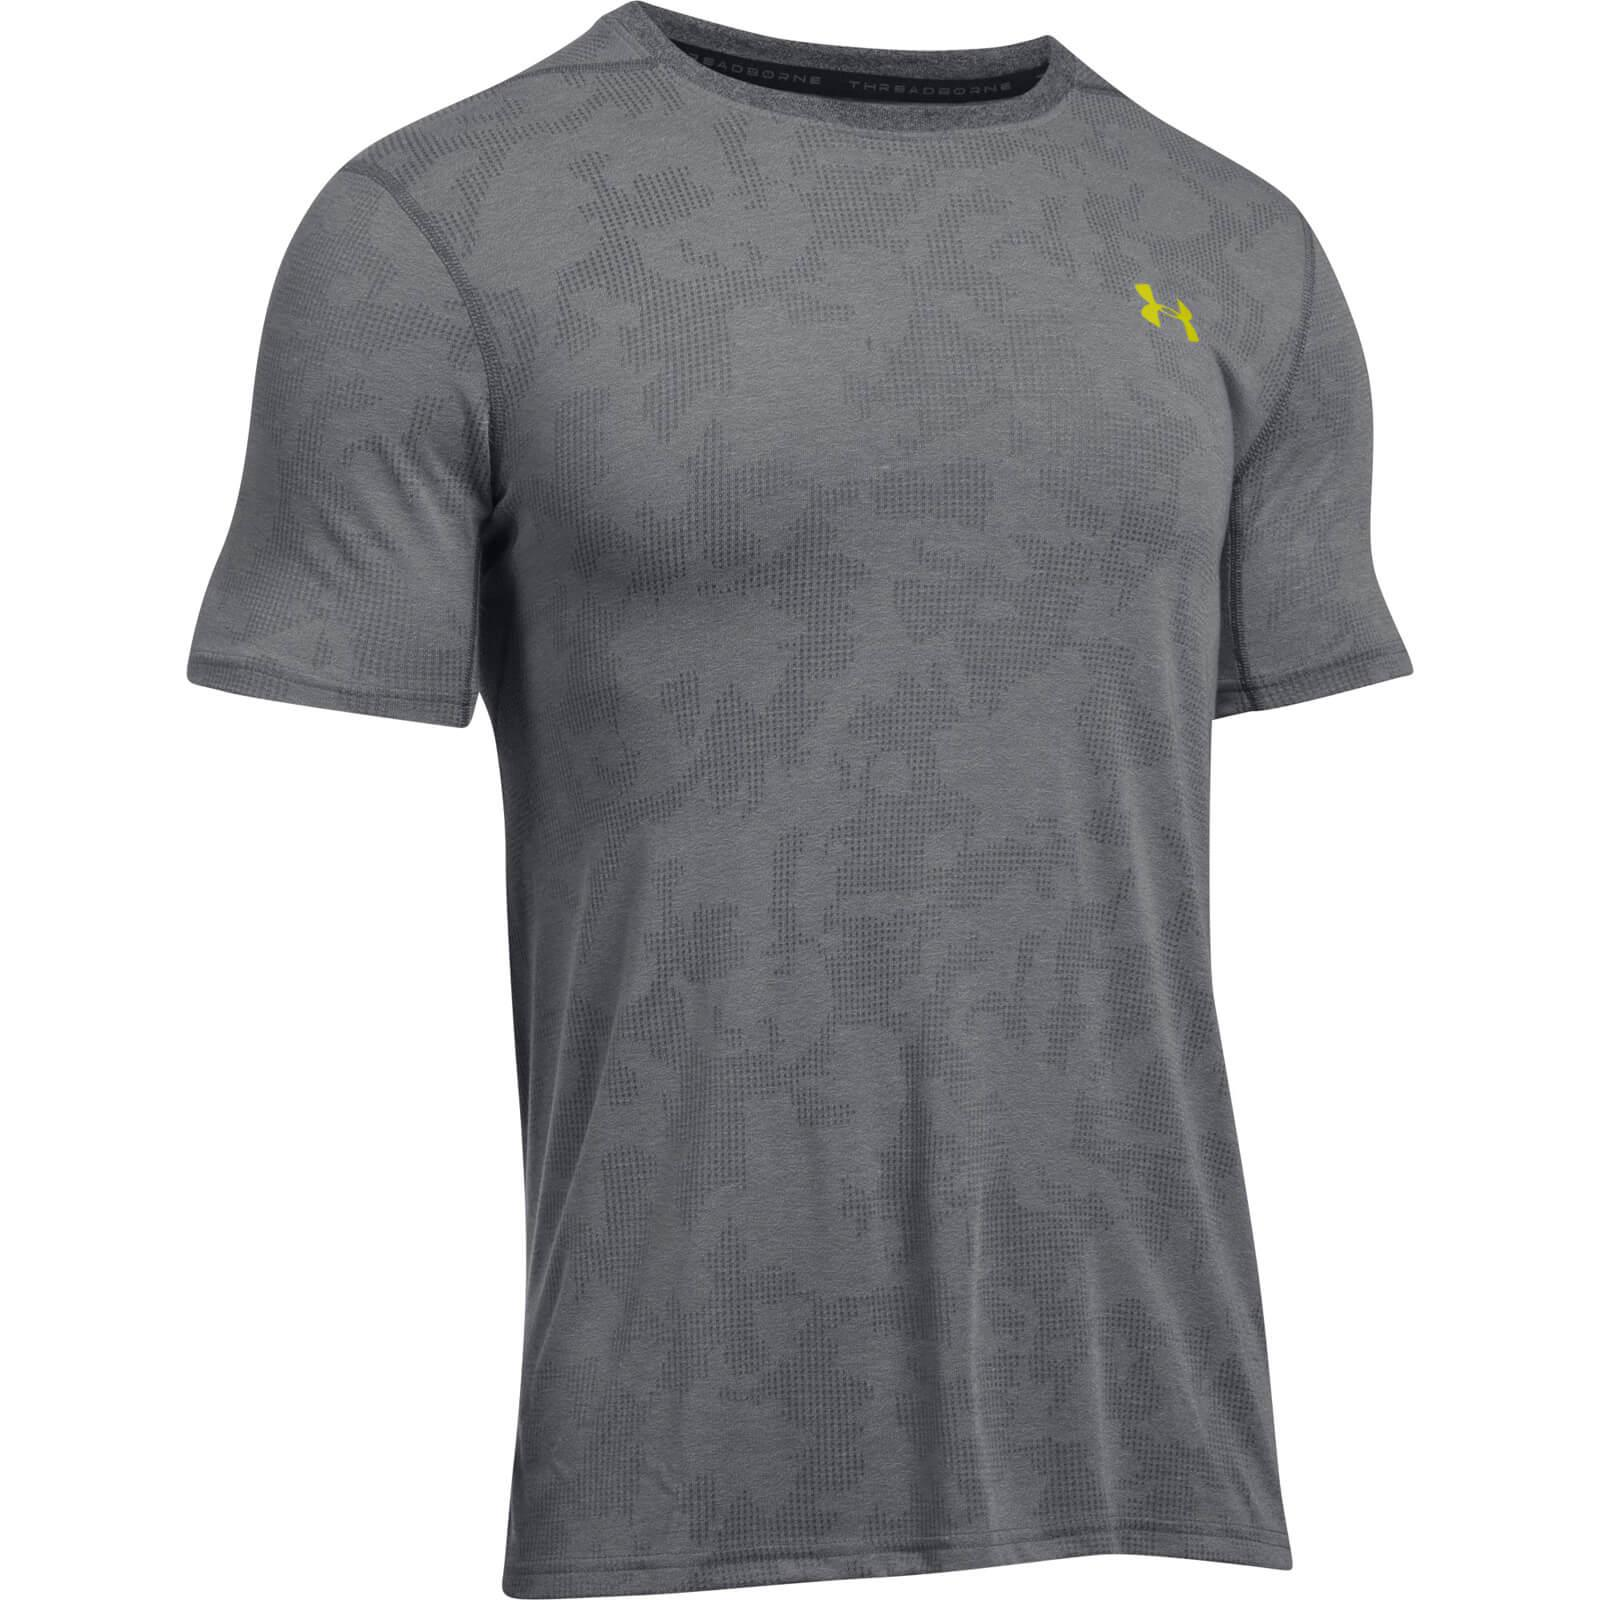 Lyst under armour elite fitted t shirt in gray for men for Under armour fitted t shirt